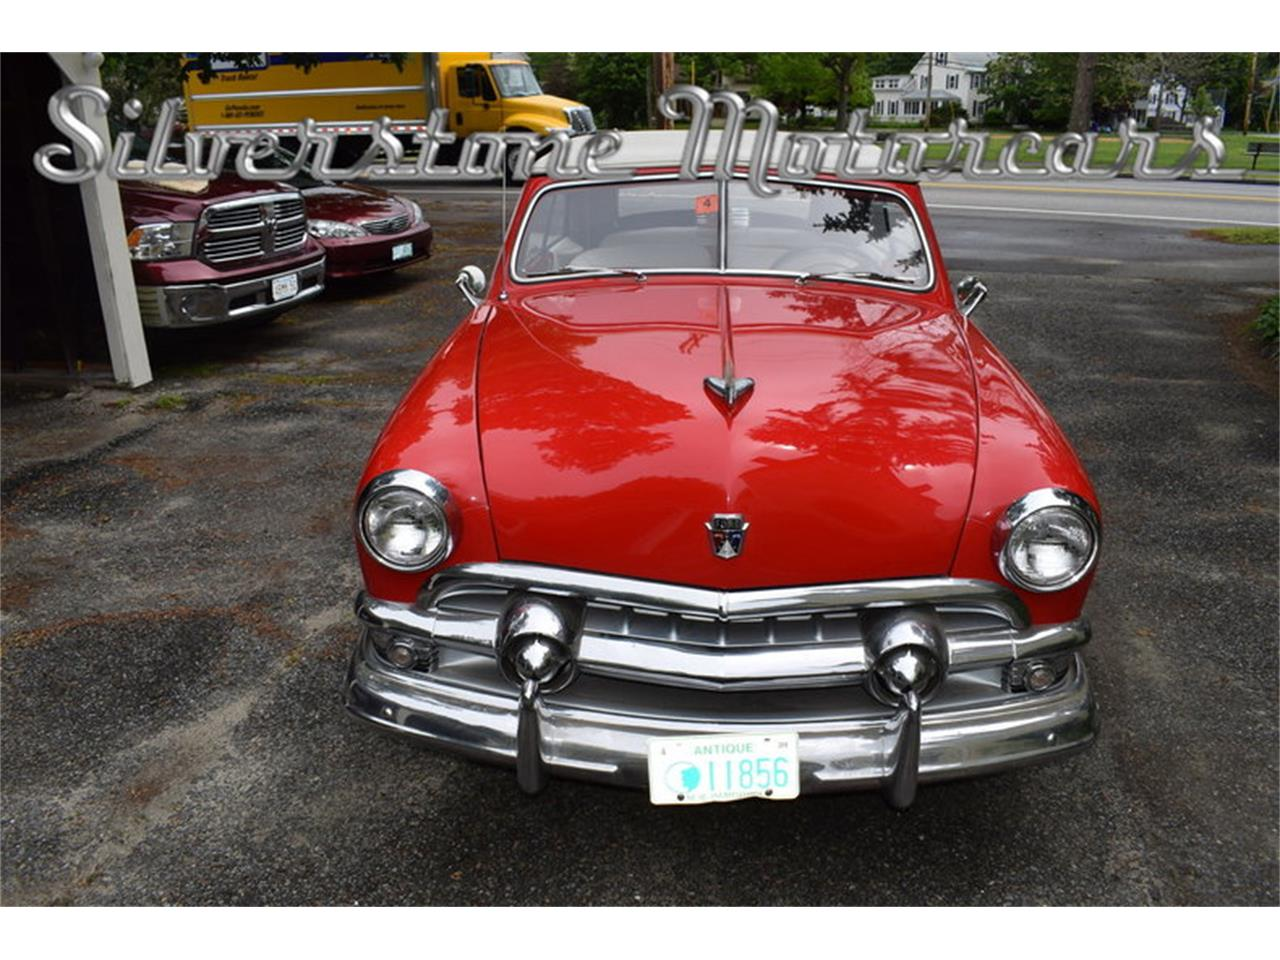 Large Picture of 1951 Custom Deluxe located in North Andover Massachusetts - $39,000.00 - L79S